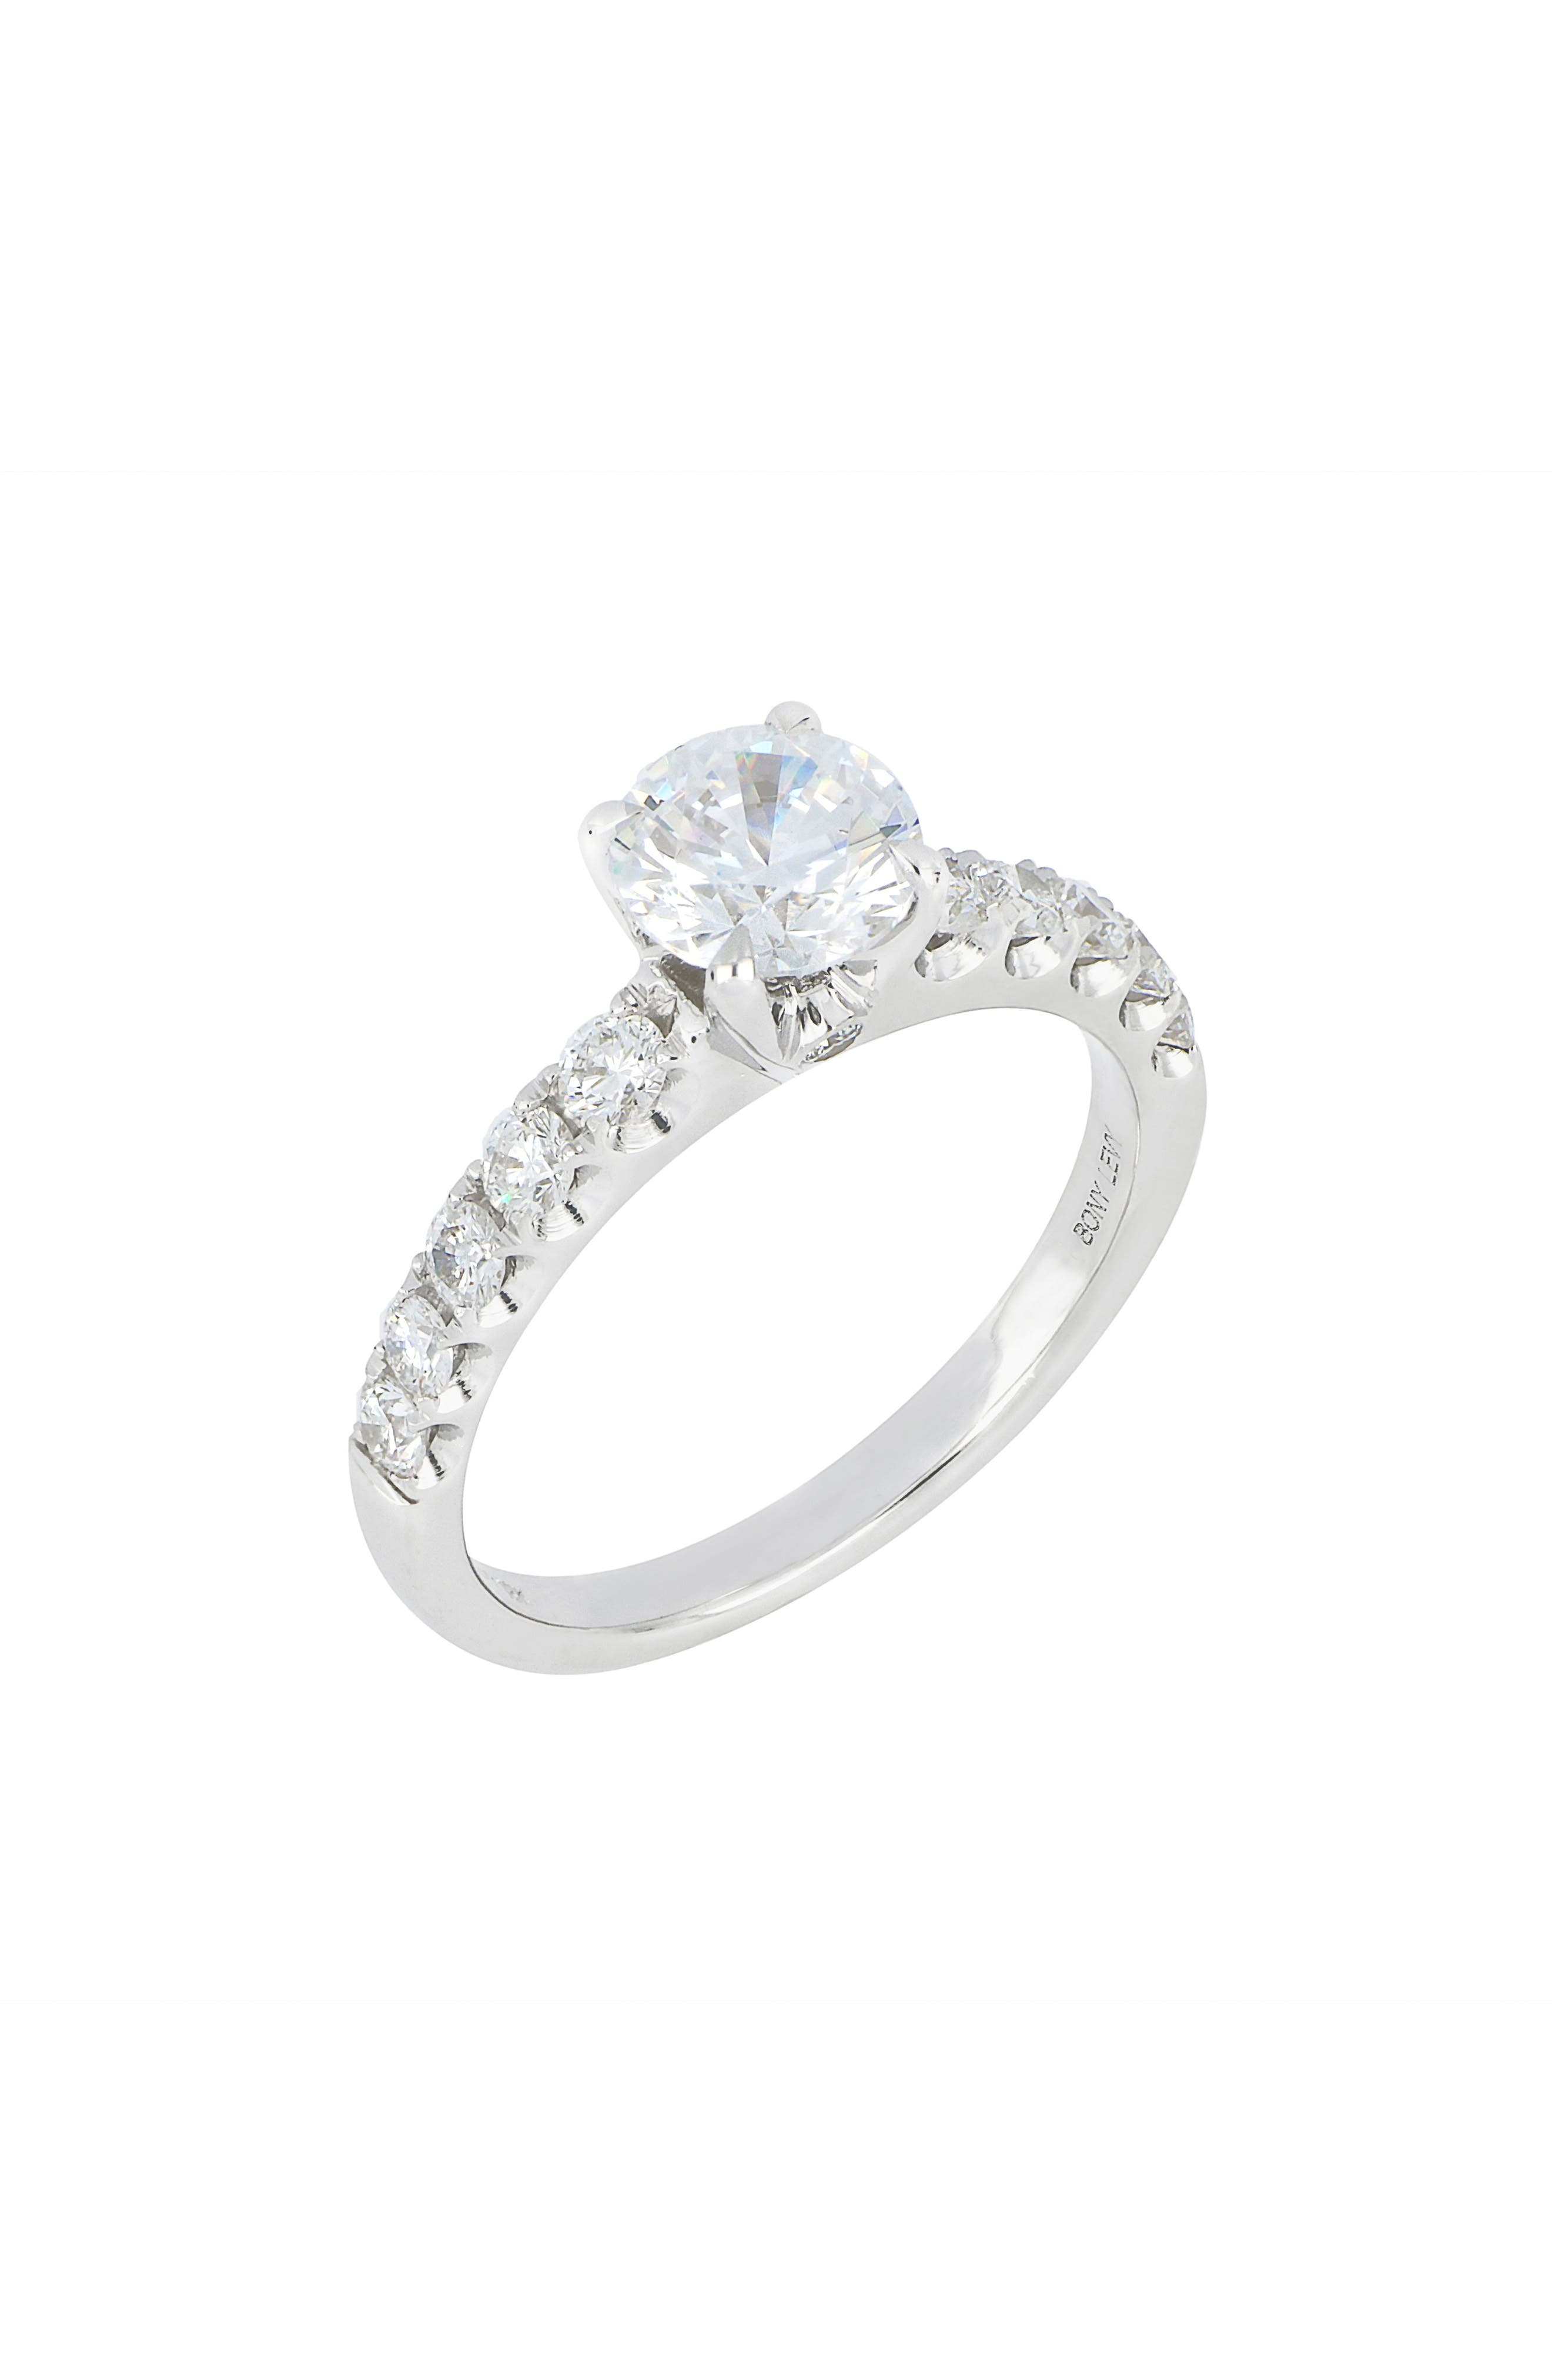 Pave Diamond Round Solitaire Engagement Ring Setting (Nordstrom Exclusive)